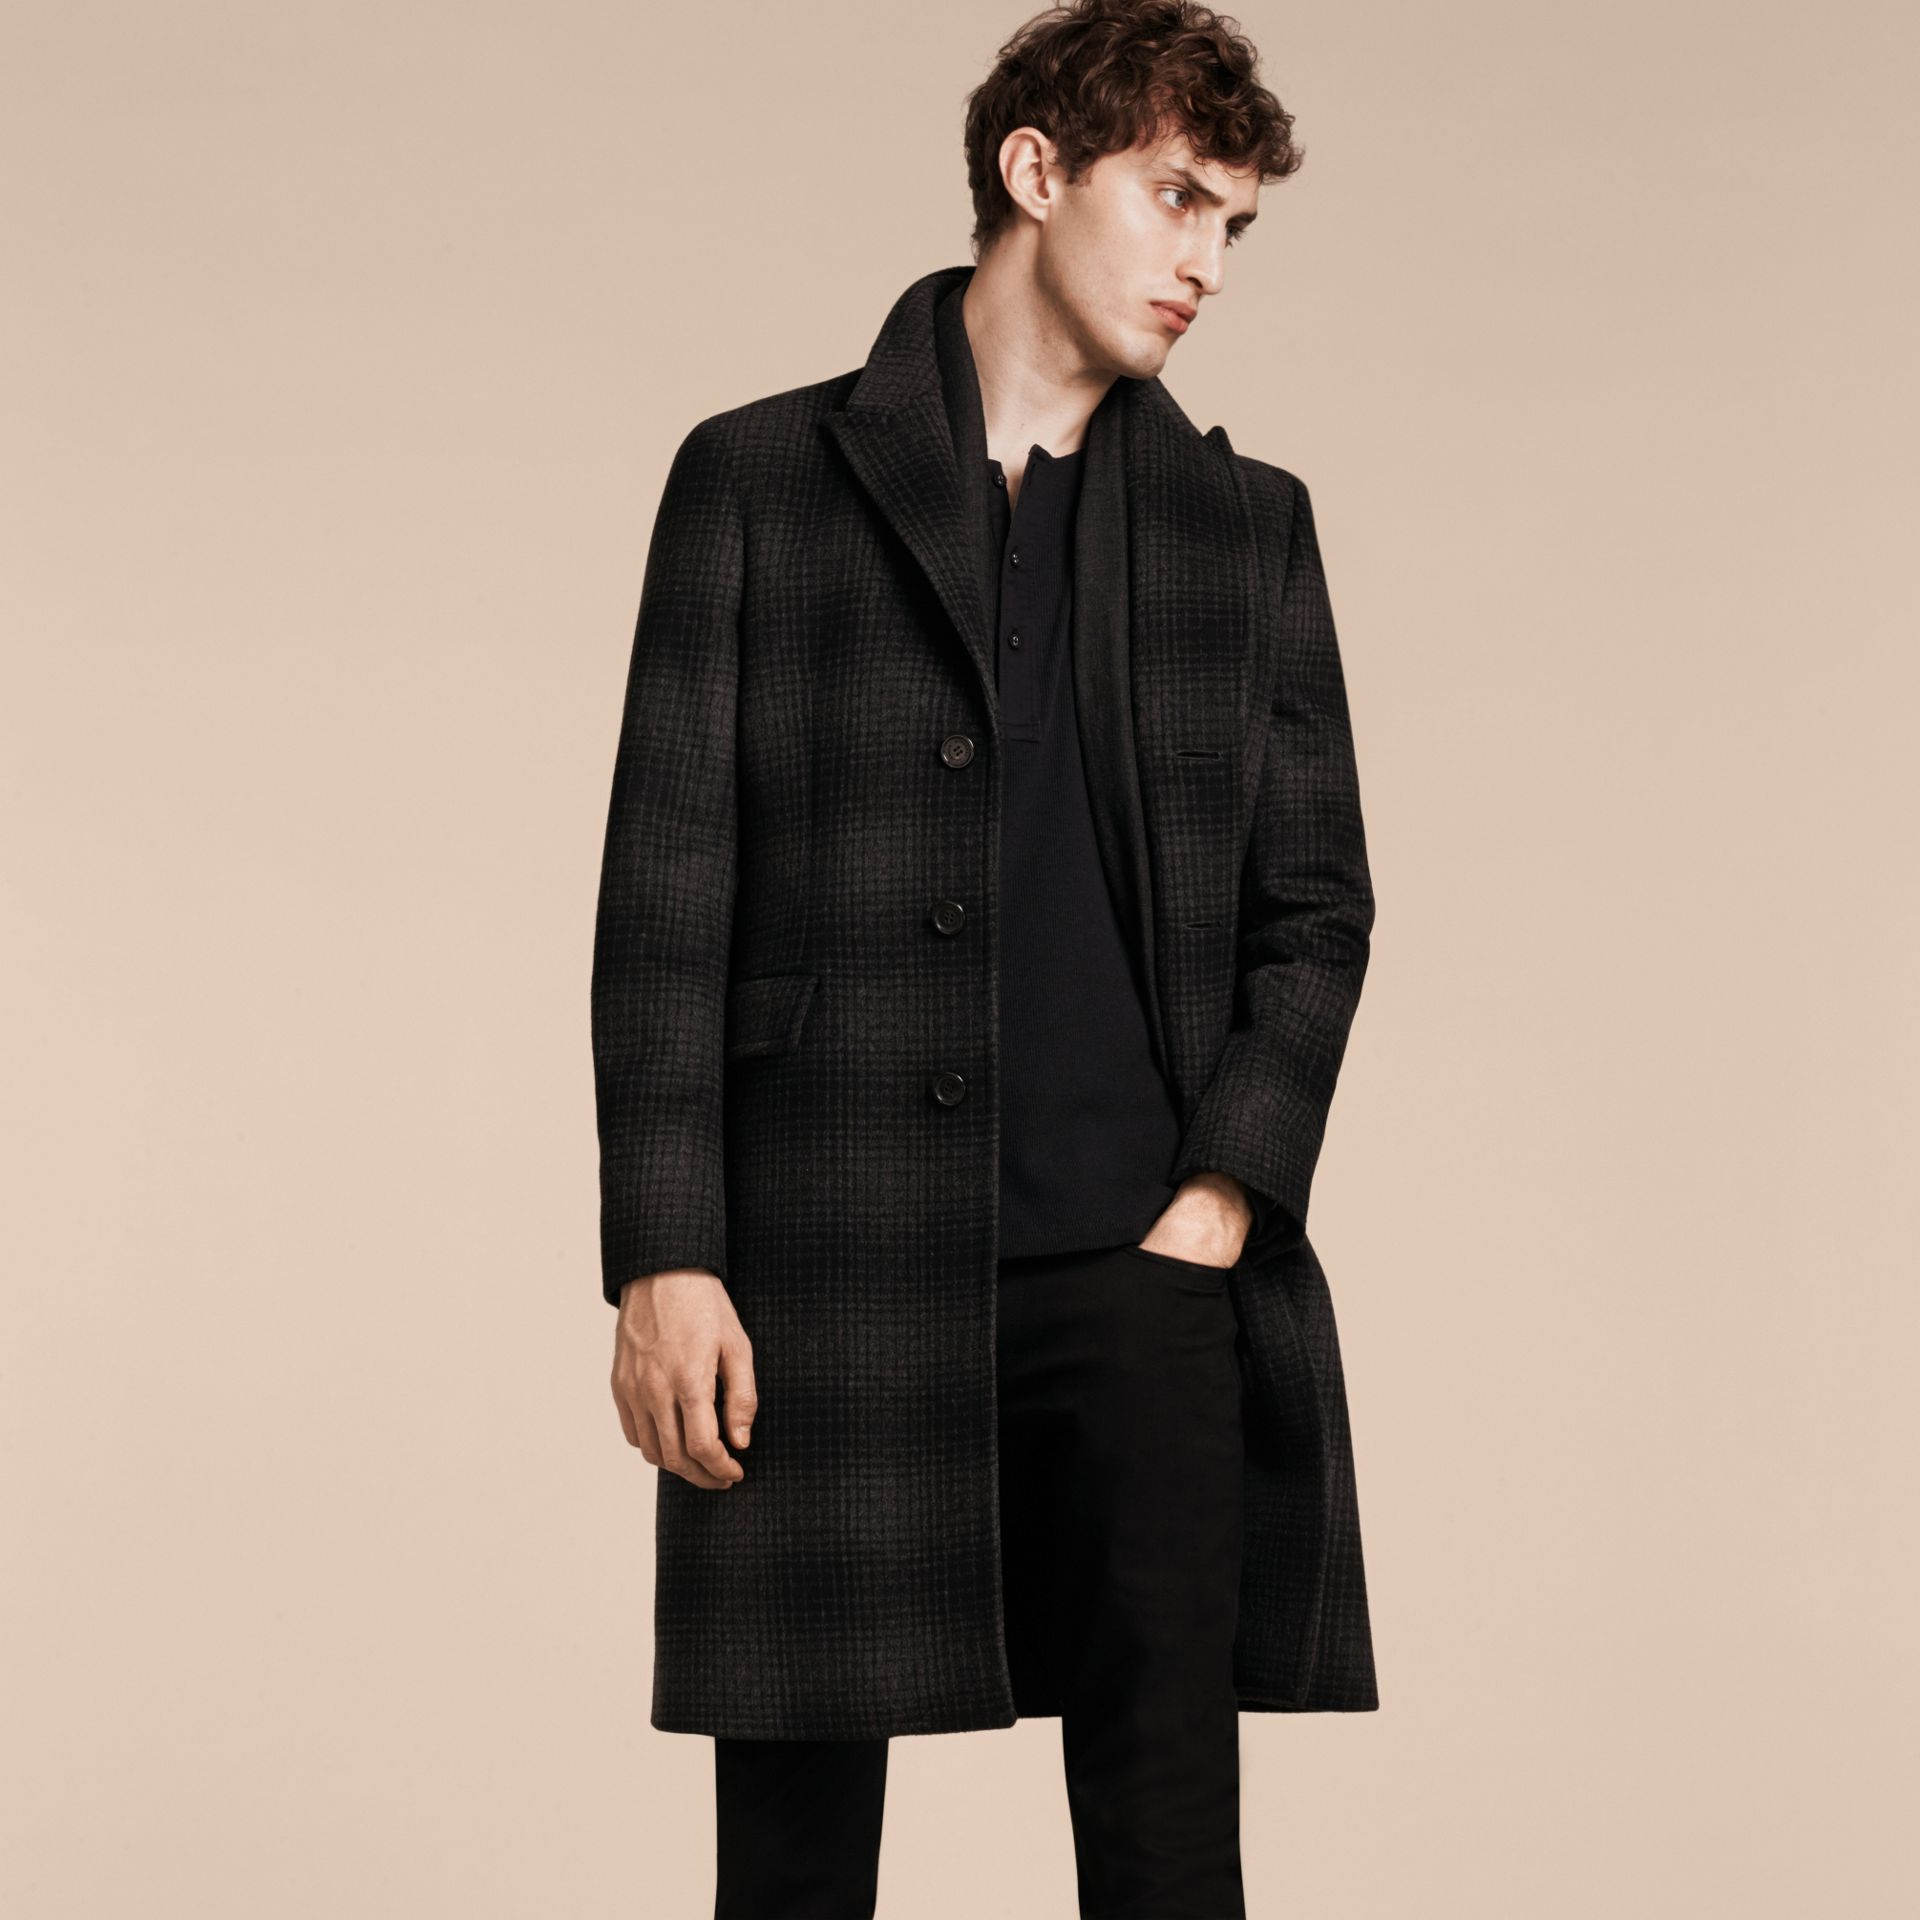 Charcoal melange Tailored Check Wool Cashmere Coat - gallery image 7